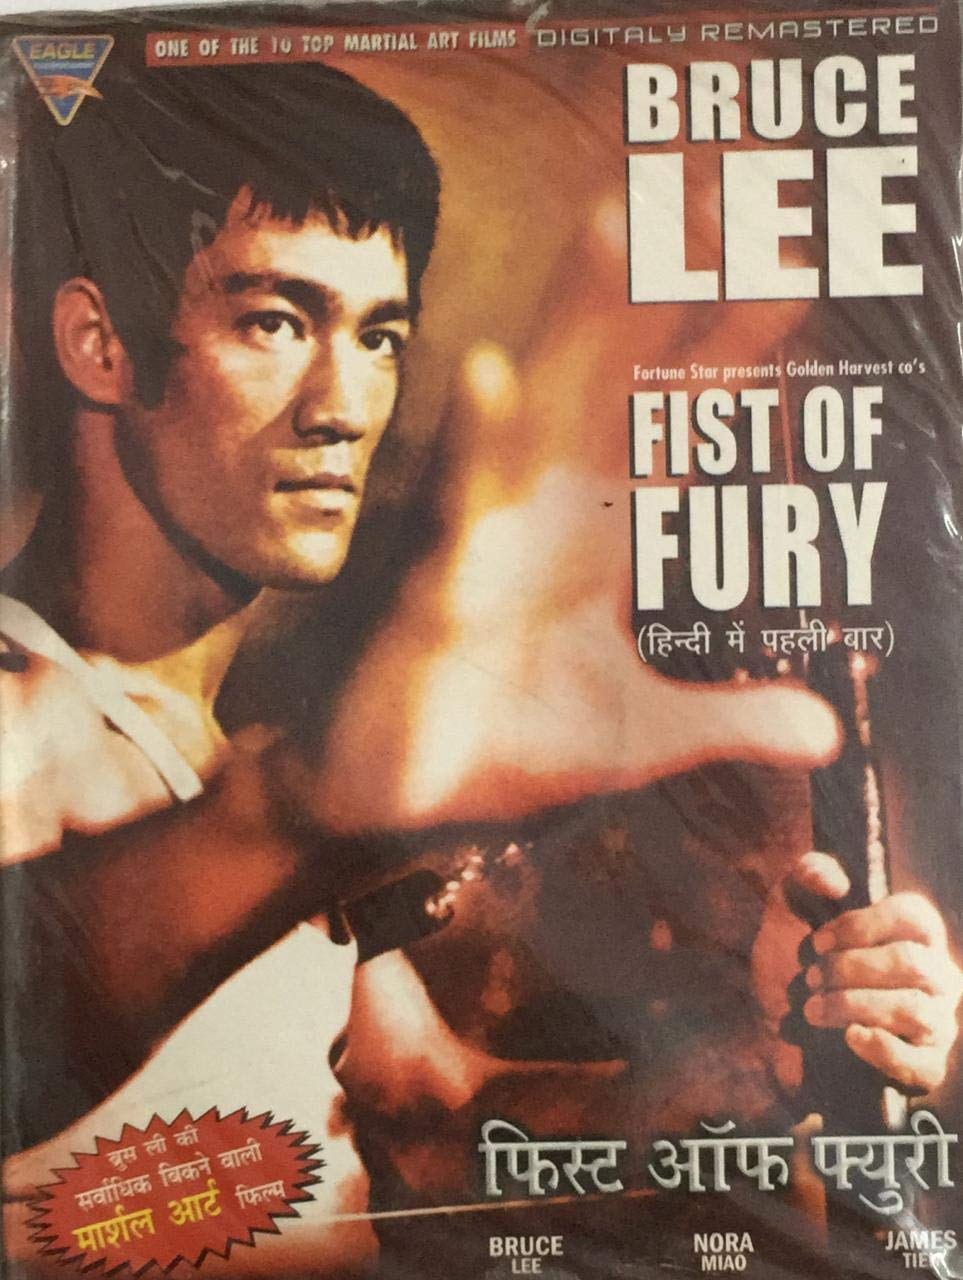 fist of fury full movie download in hindi filmyzilla - fist of fury full movie in hindi download - fist of fury full movie download in hindi dubbed